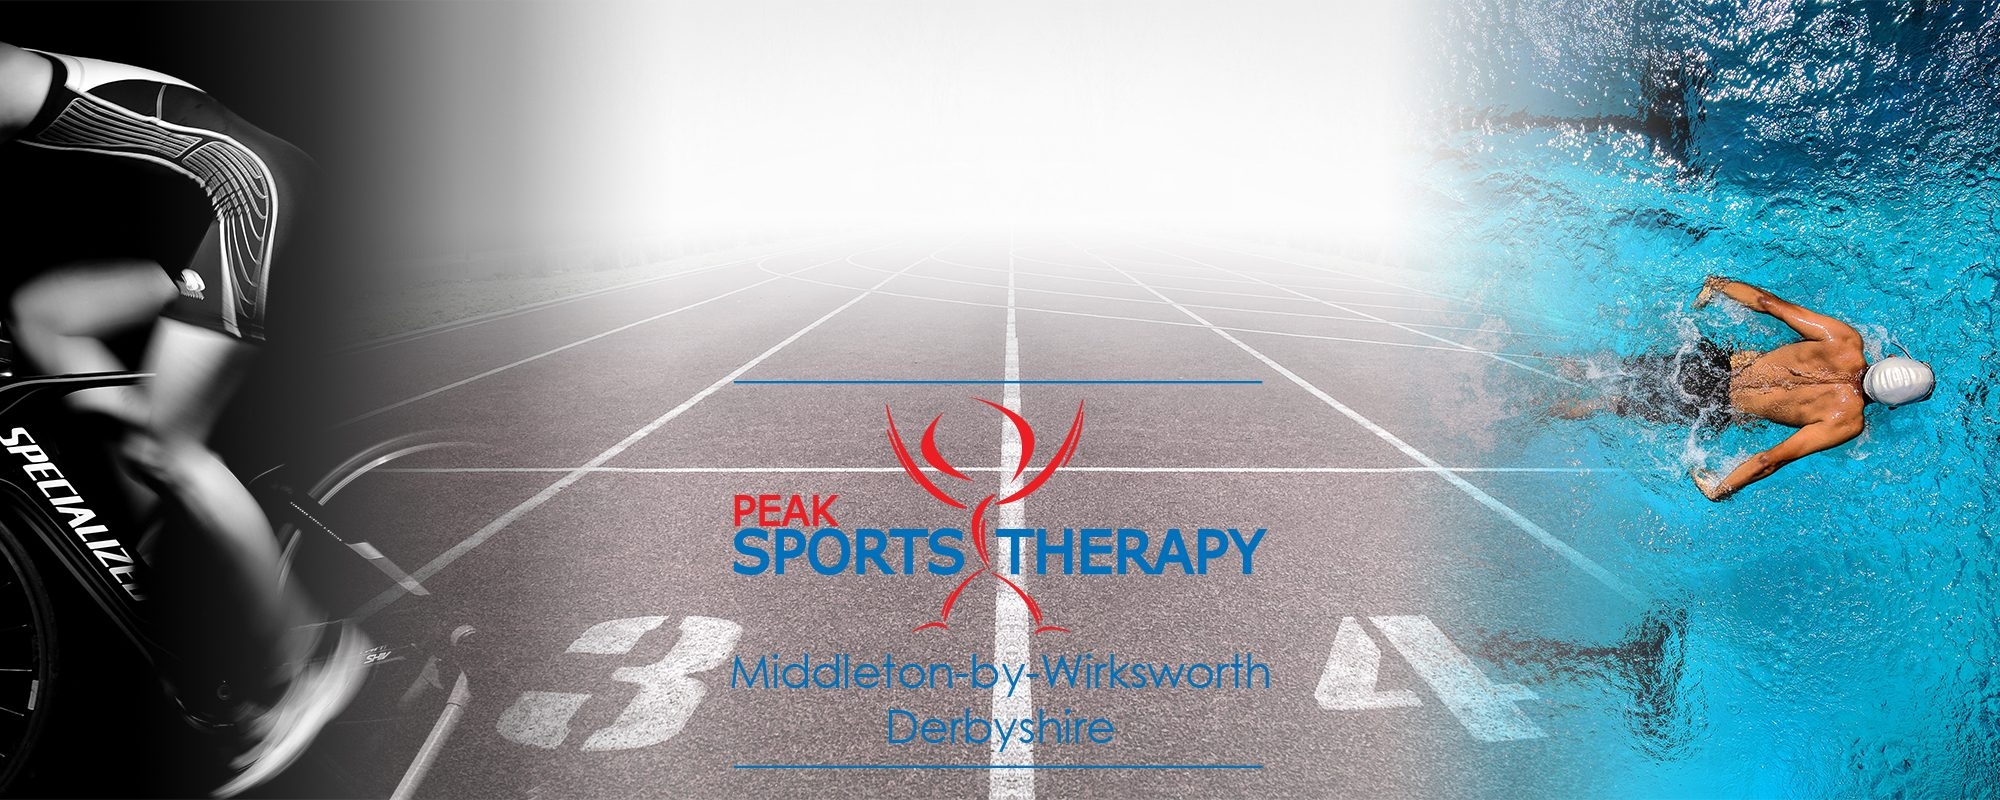 Peak Sports Therapy